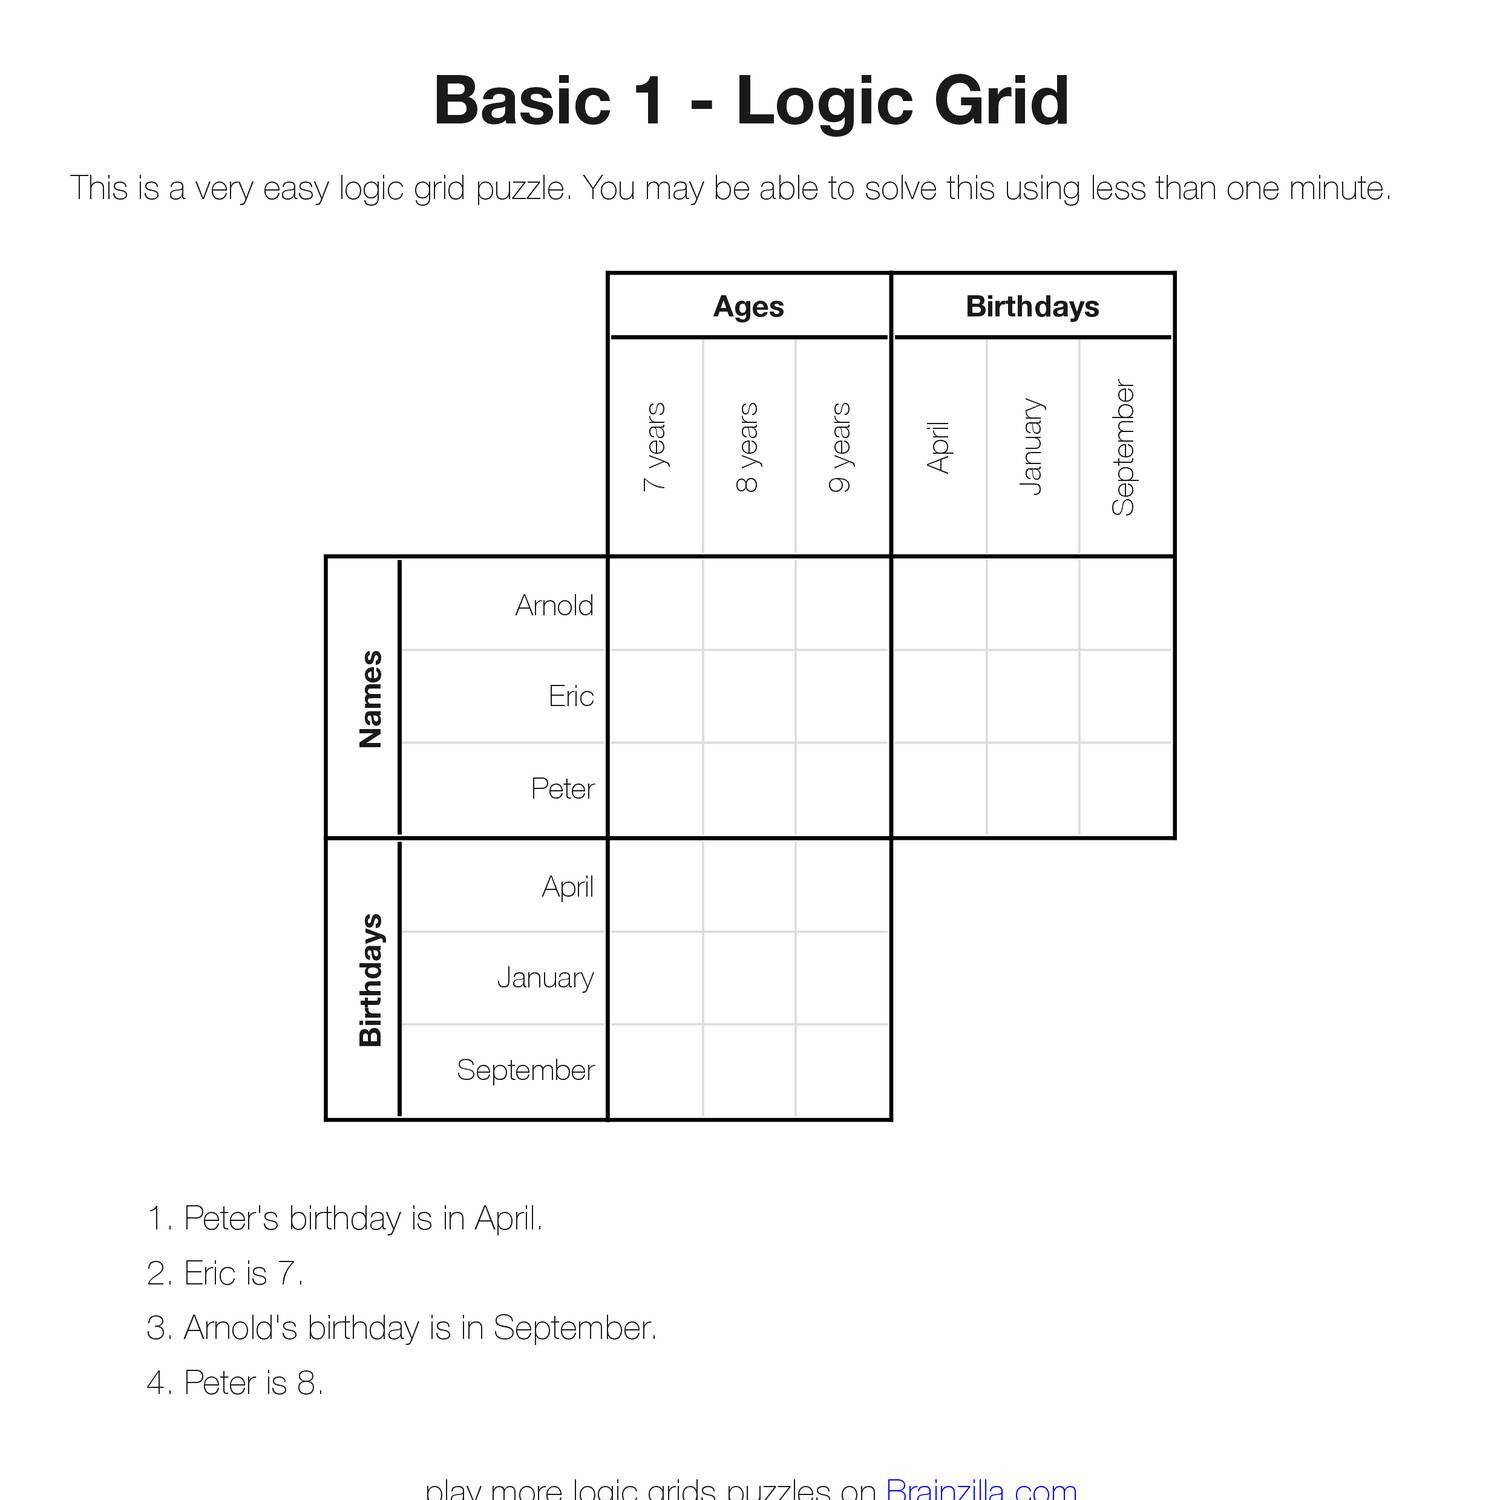 picture about Printable Grid Logic Puzzle called Printable Logic Grid Puzzles (Brainzilla).pdf DocDroid